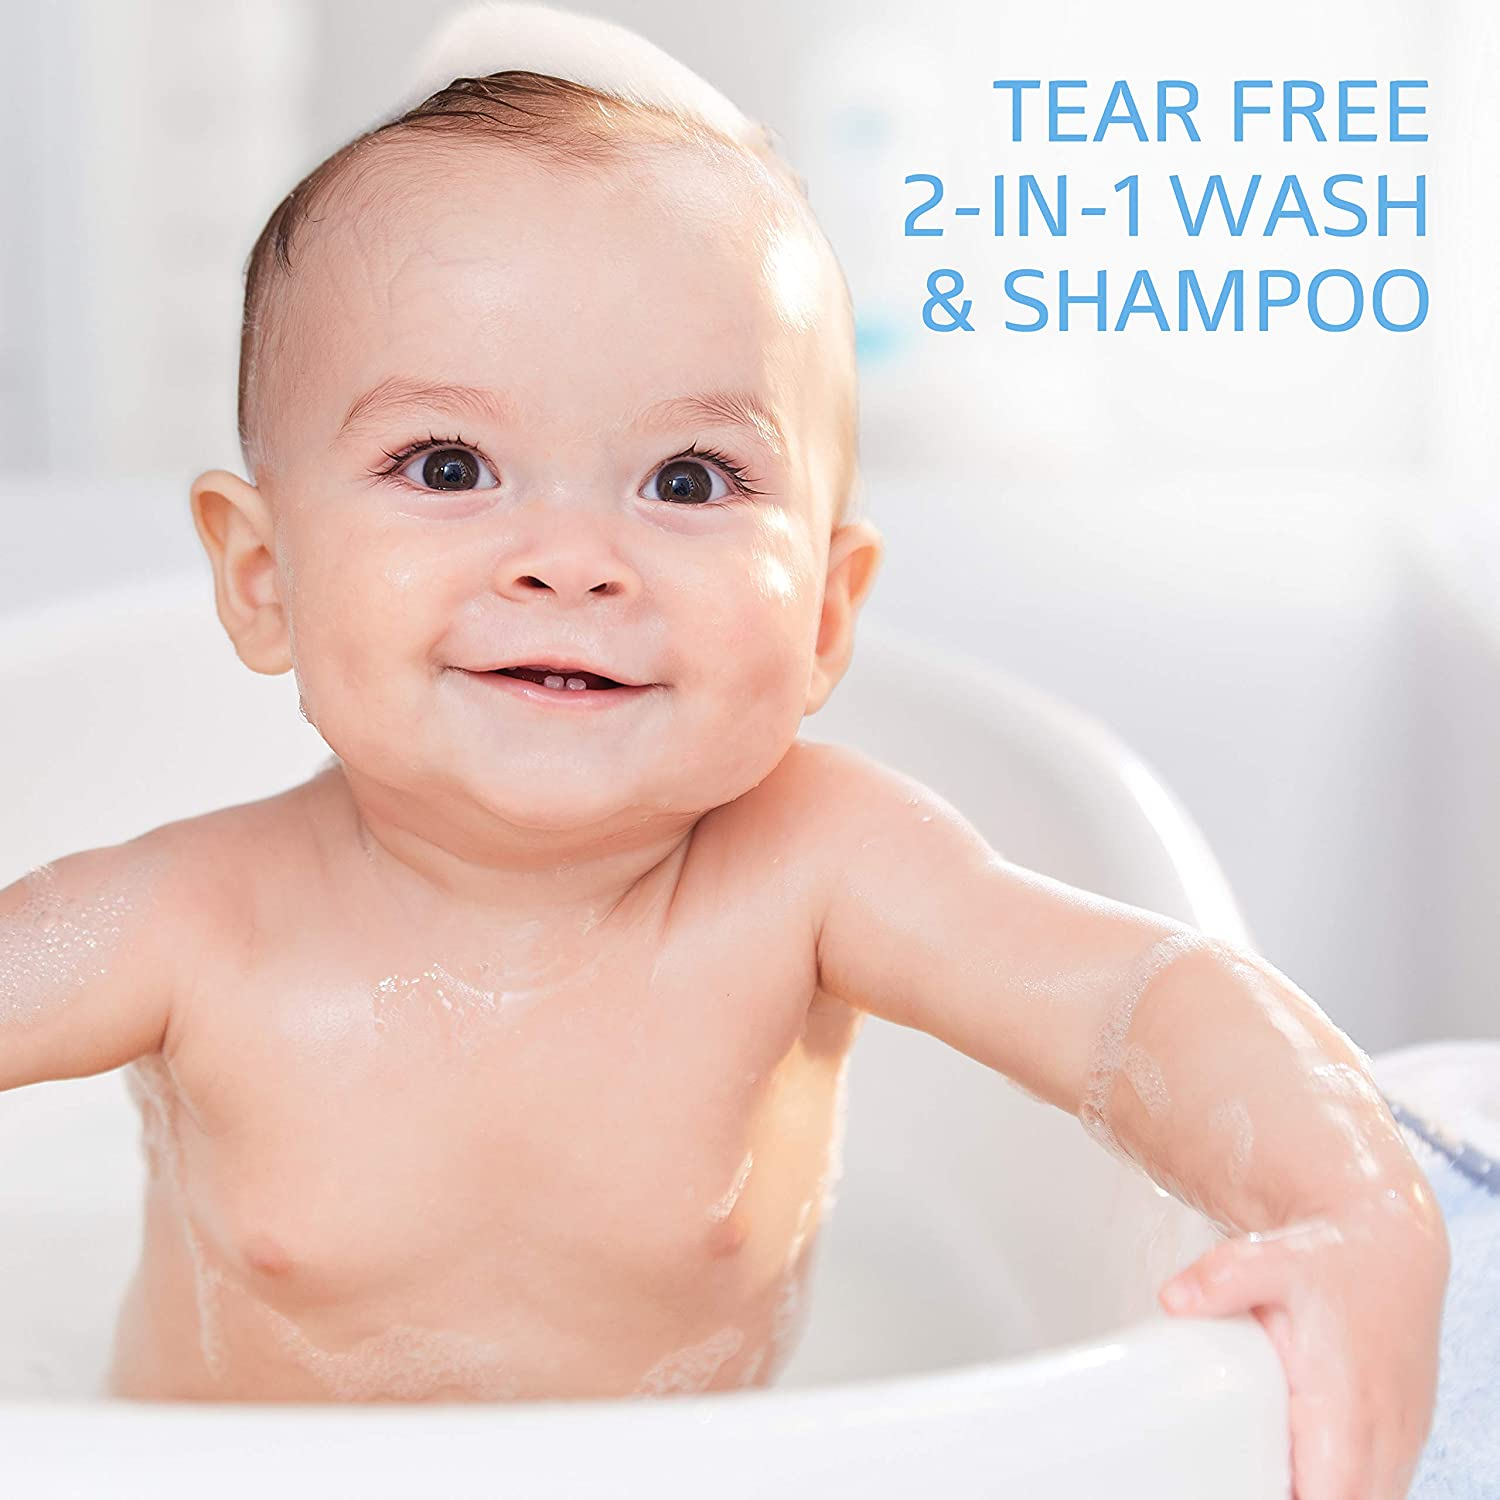 6 Baby Soaps That Are Gentle On Your Baby's Skin 